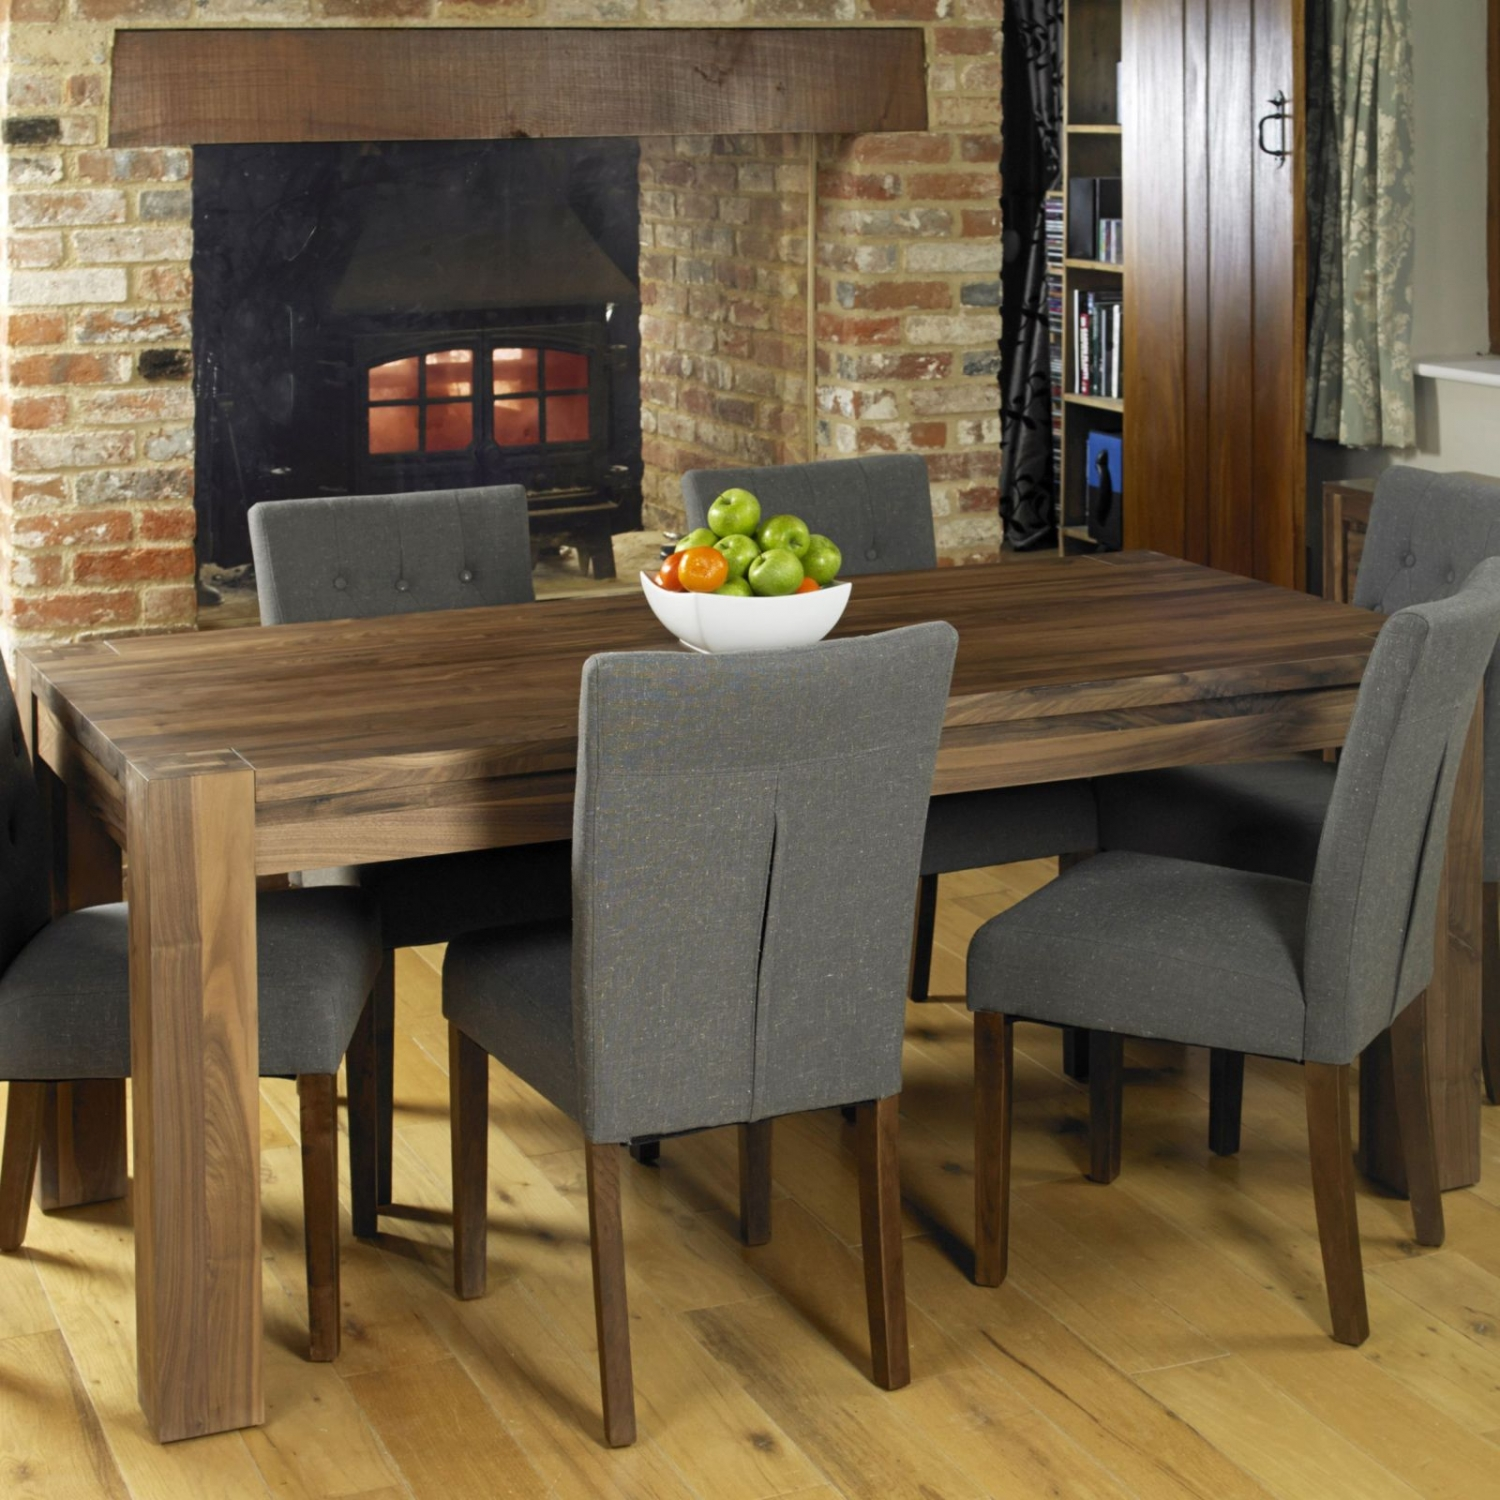 Strathmore solid walnut home dining room furniture six for Dining room tables 6 seater